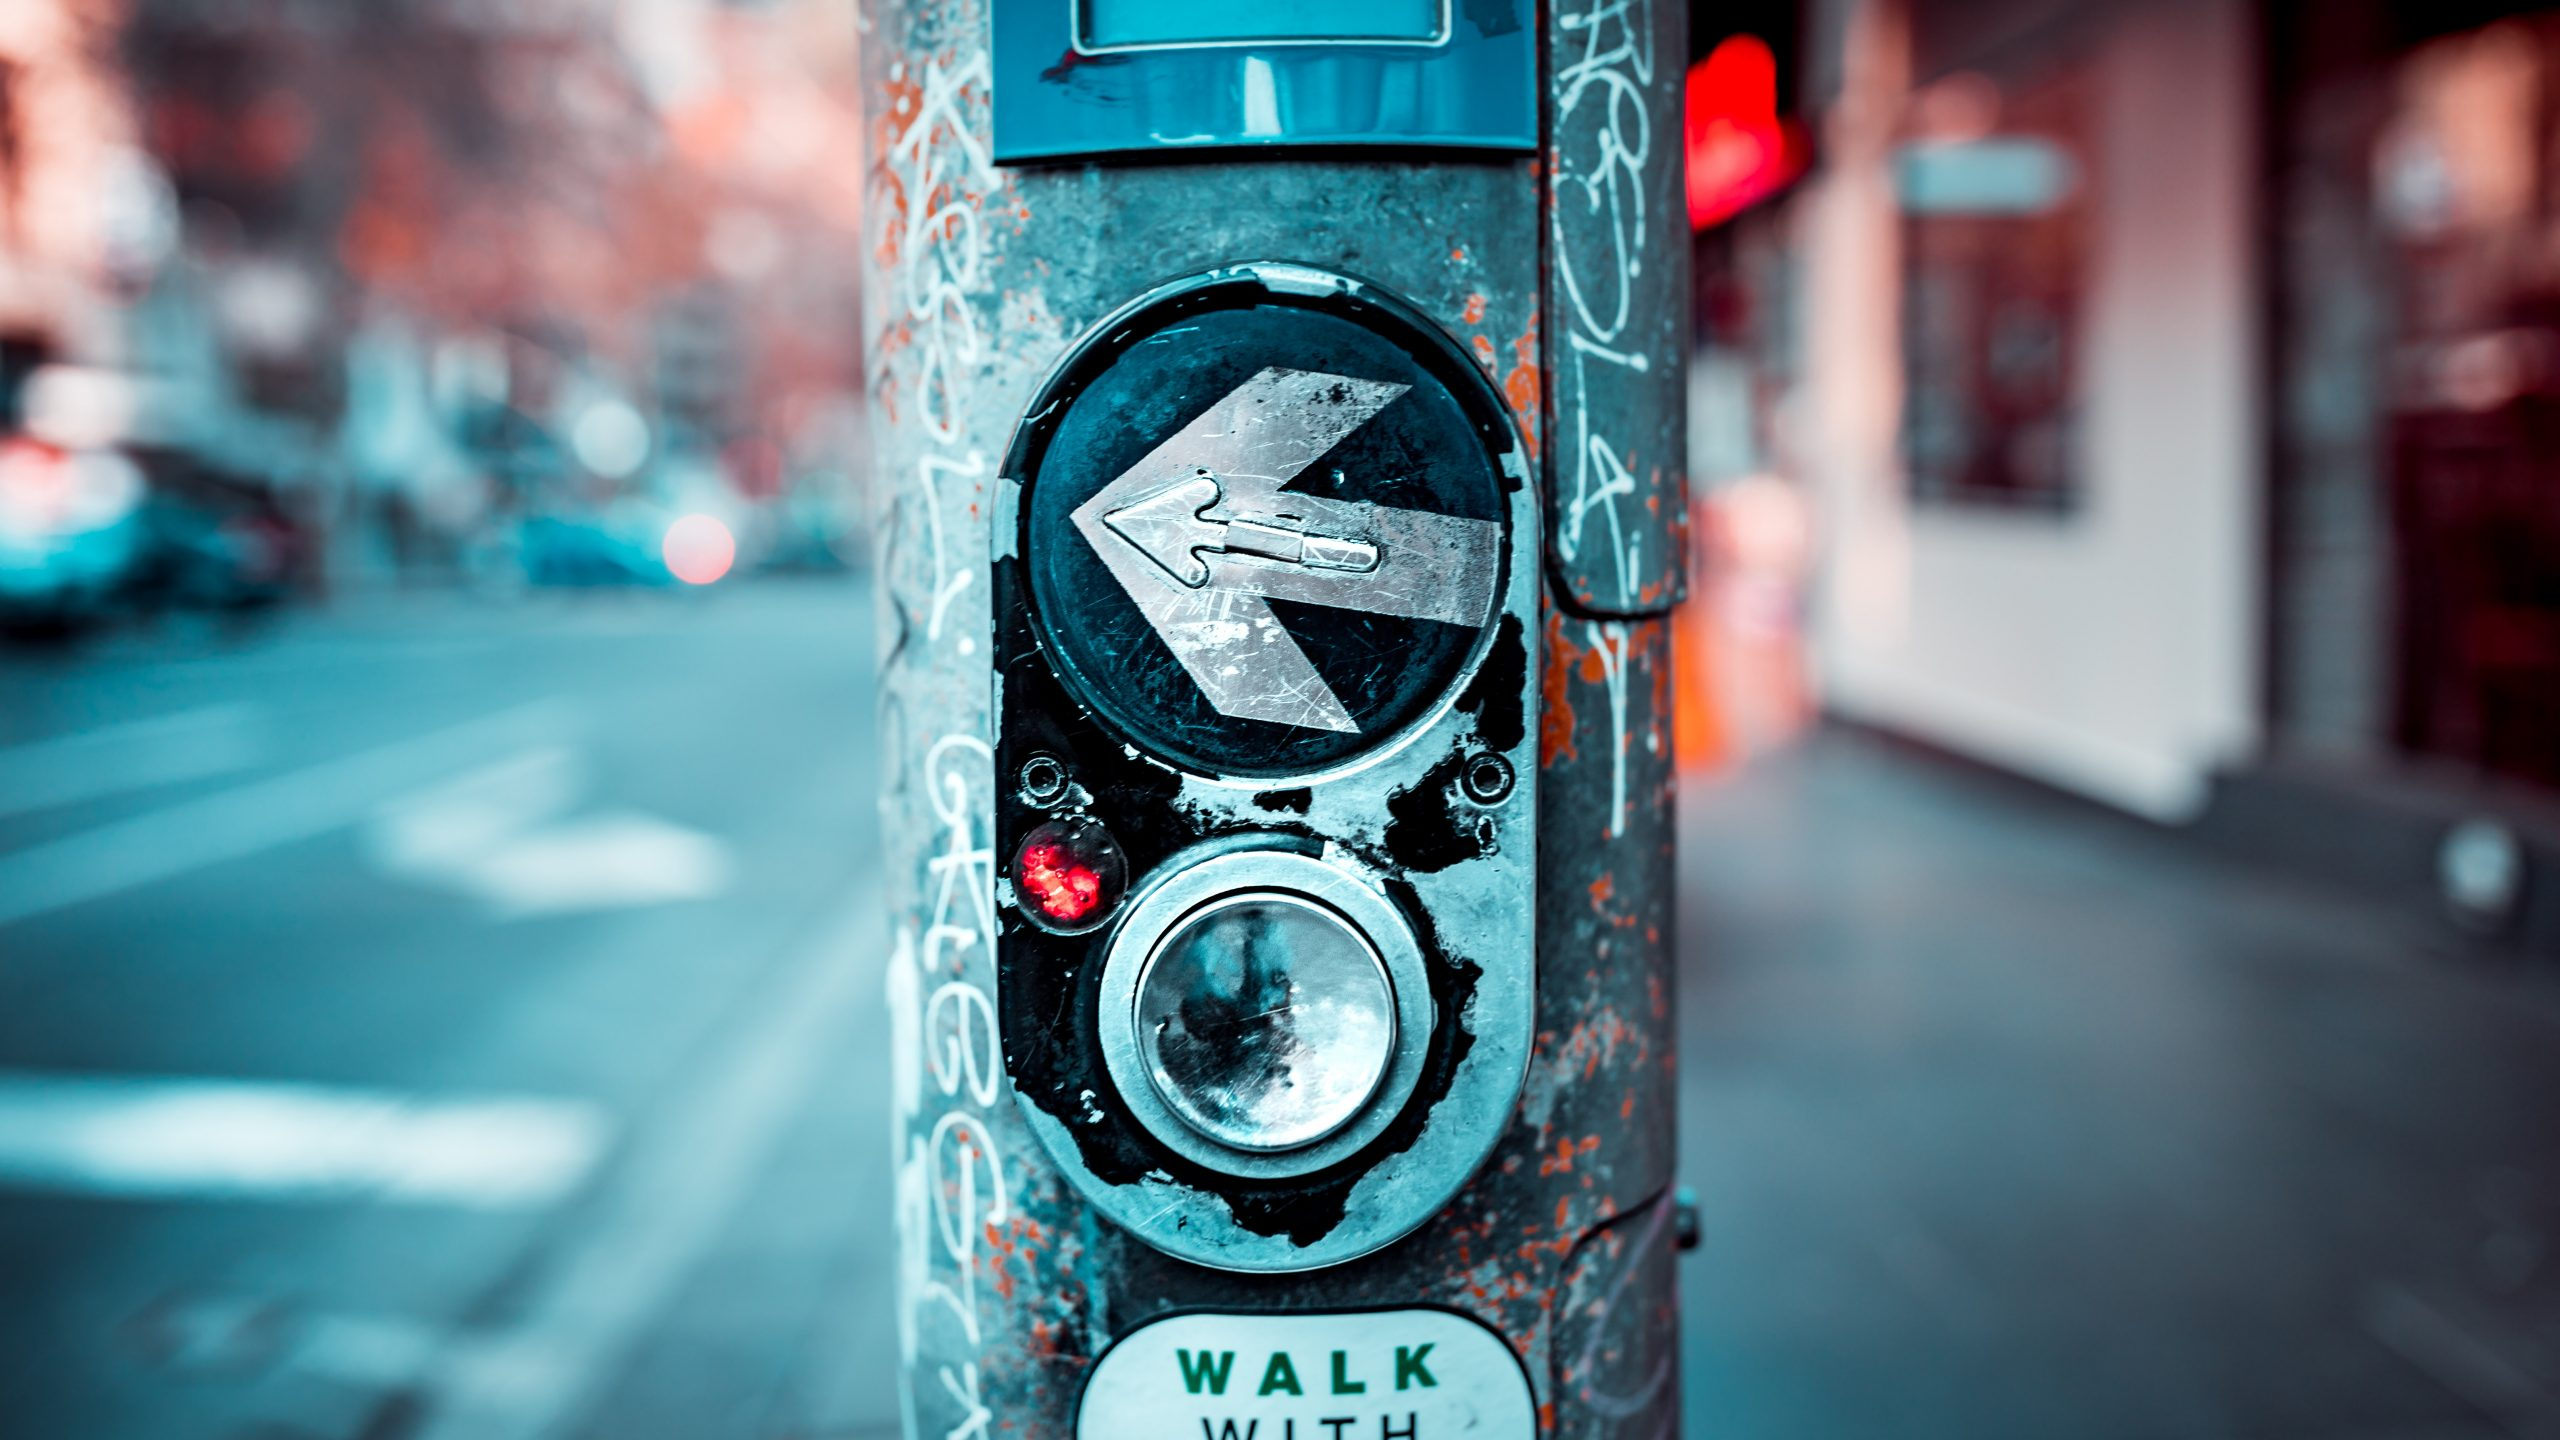 Picture of a pedestrian walking button in urban Melbourne pointing left on a